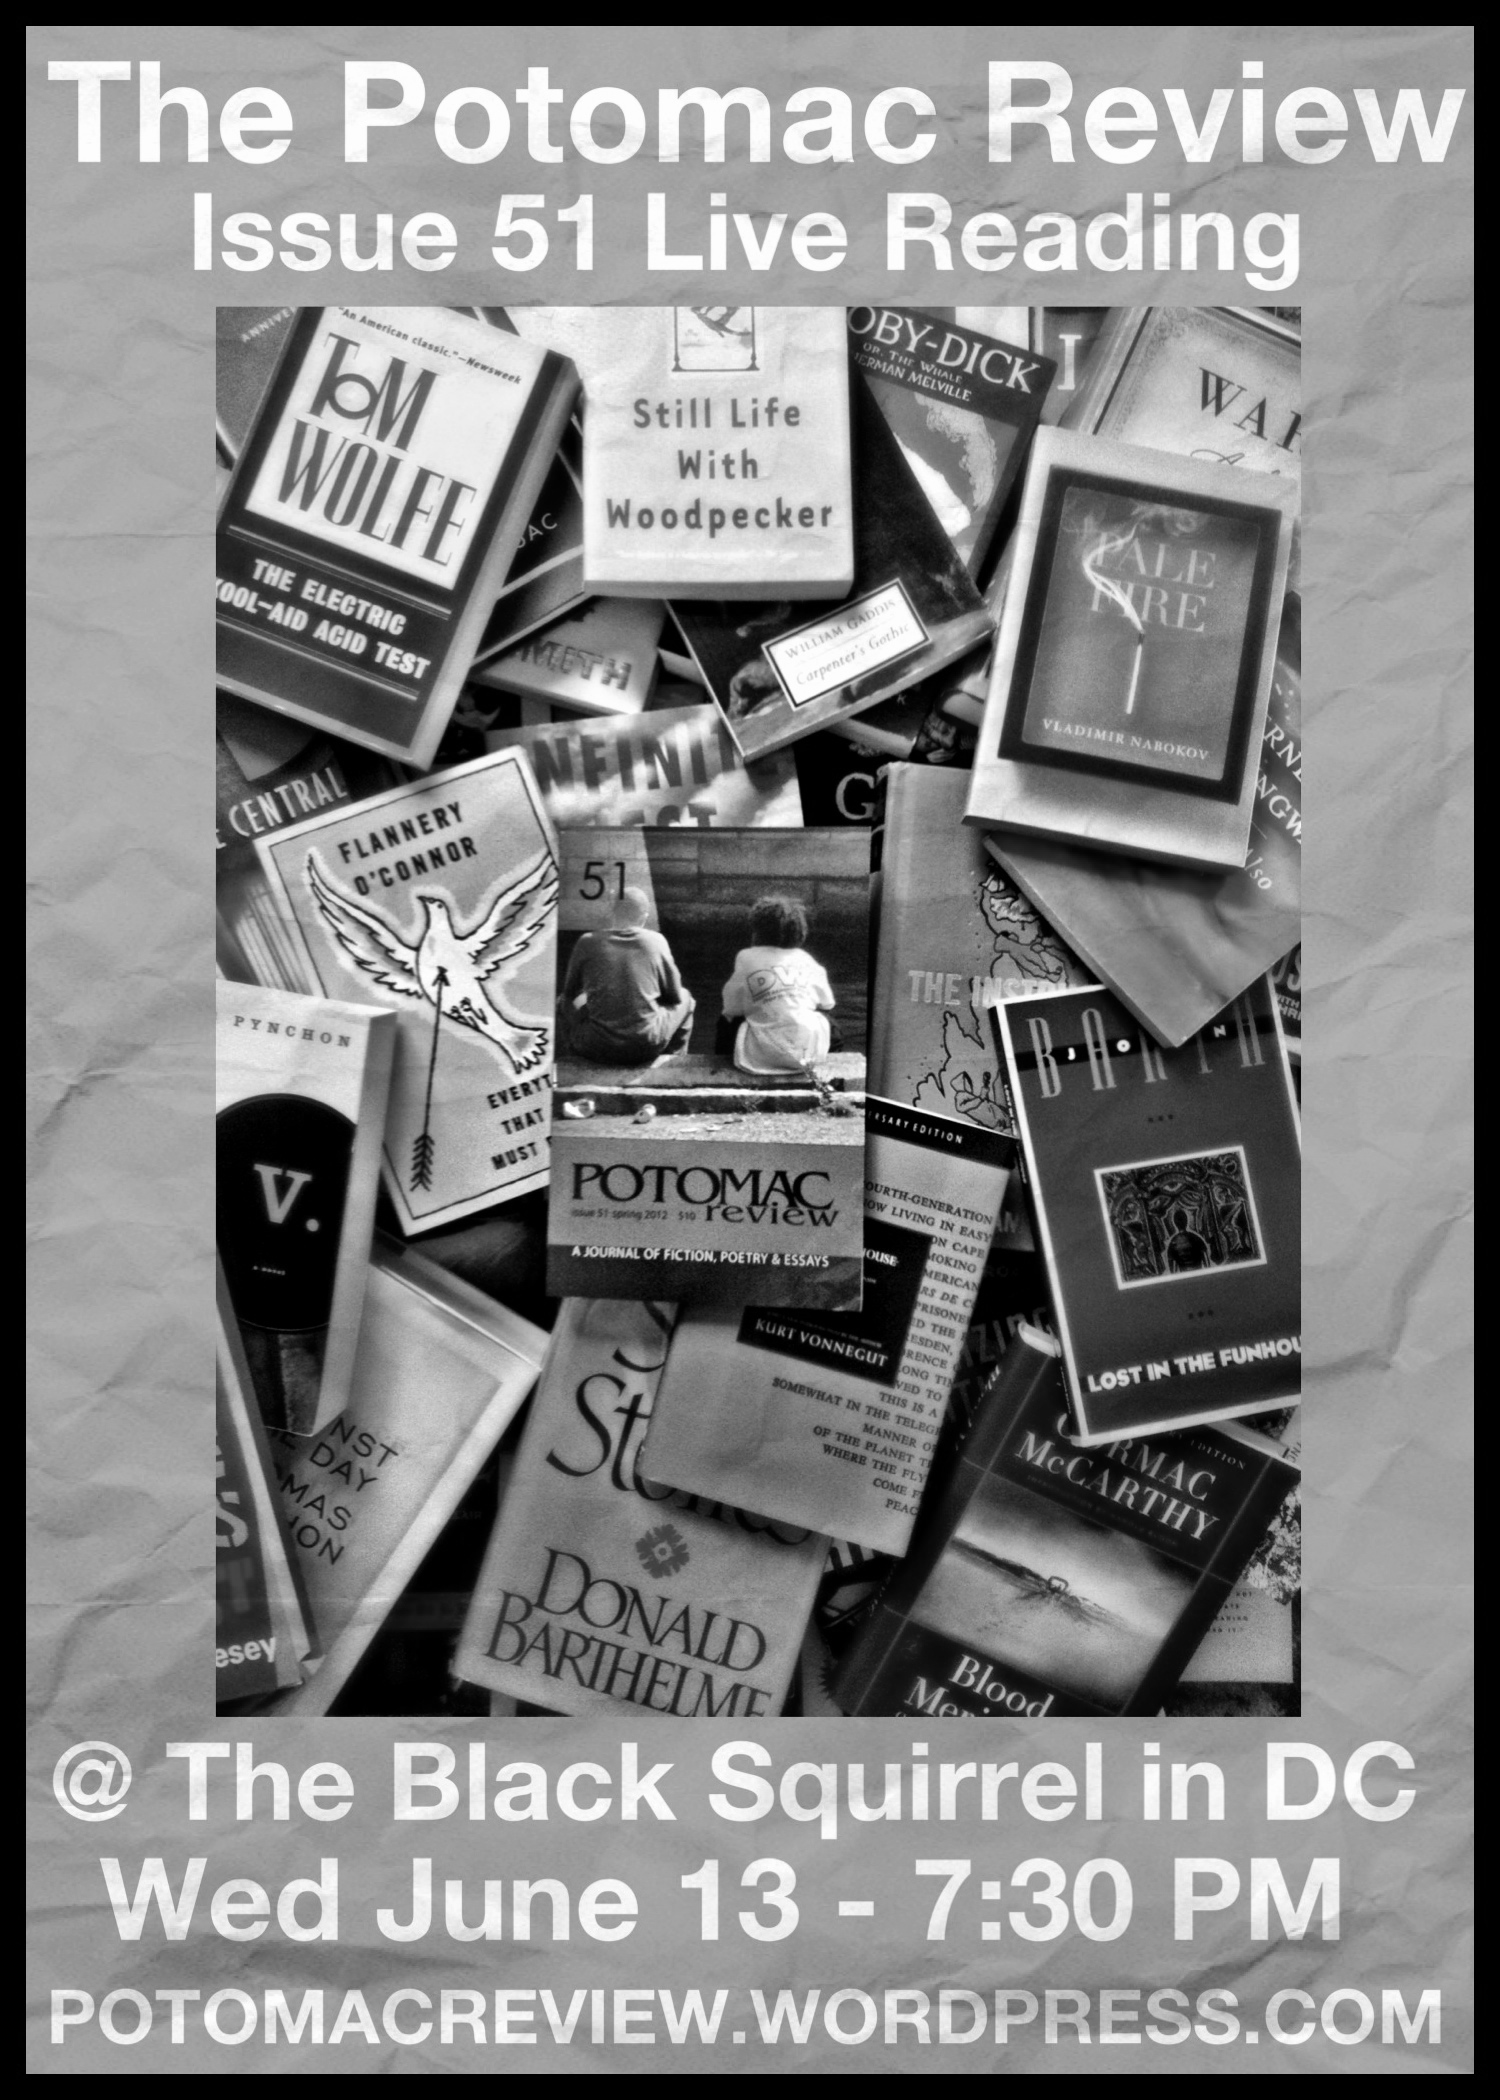 Issue 51 Launch Party – June 13th At The Black Squirrel